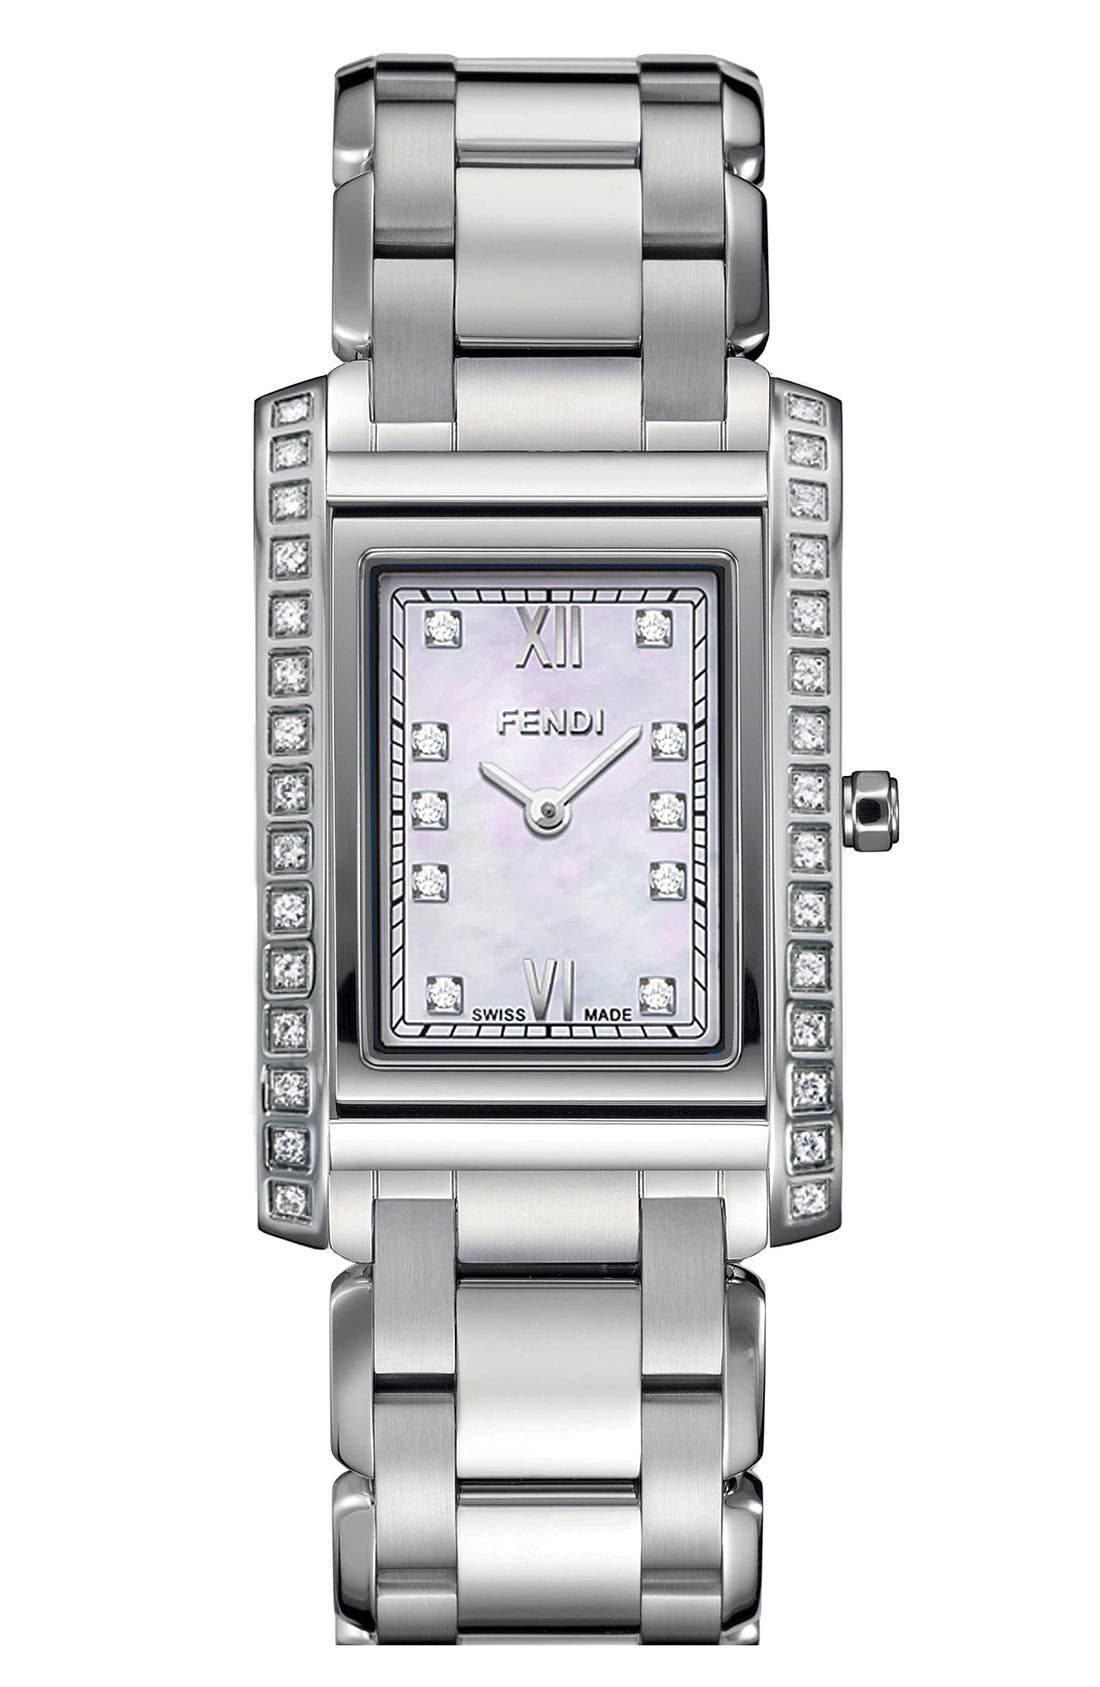 Alternate Image 1 Selected - Fendi 'Loop - Small' Diamond Bracelet Watch, 21mm x 34mm